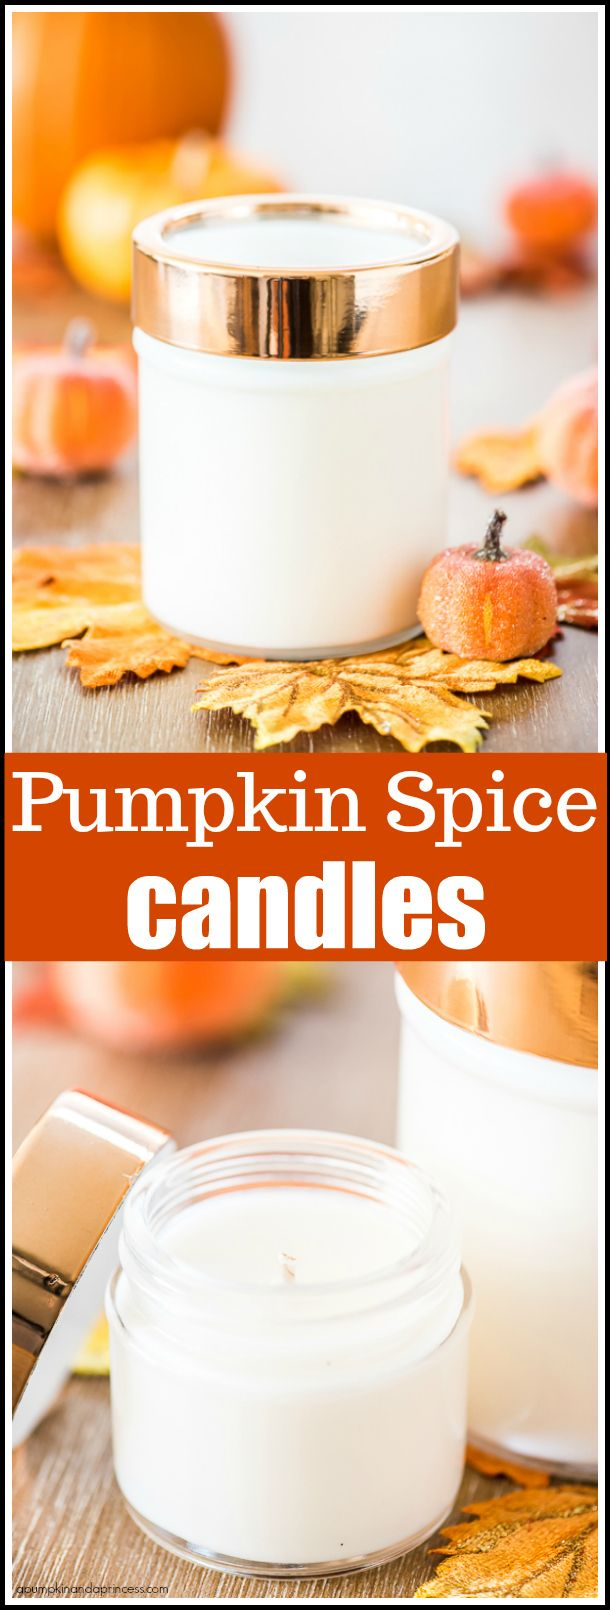 How to make pumpkin spice candles for the holidays and they also make a great handmade gift idea.  www.apumpkinandaprincess.com